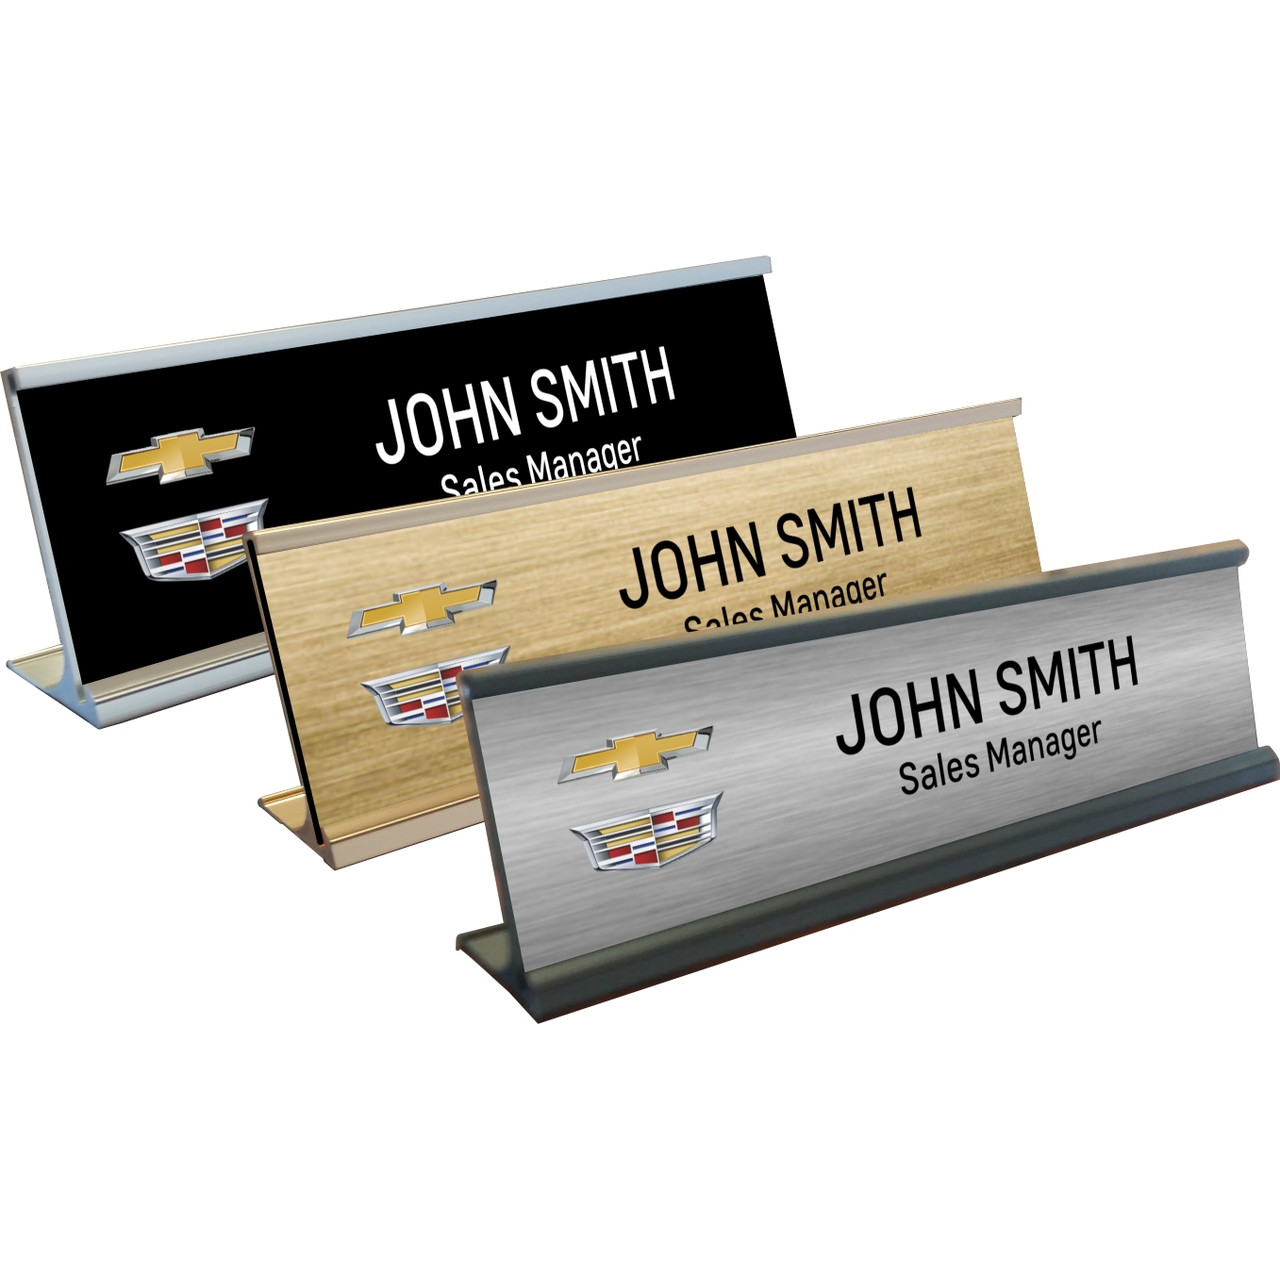 Chevrolet Cadillac Name Plates with Aluminum Desk Holder ...